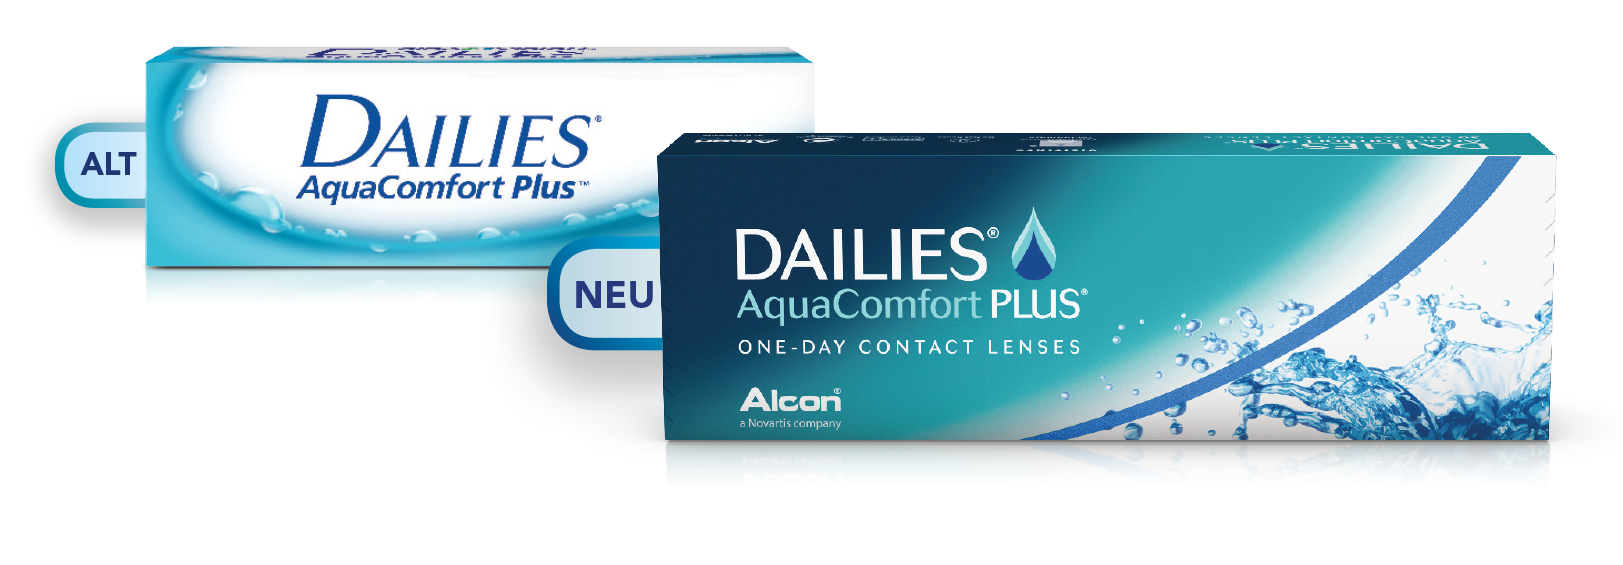 Image result for dailies aquacomfort plus